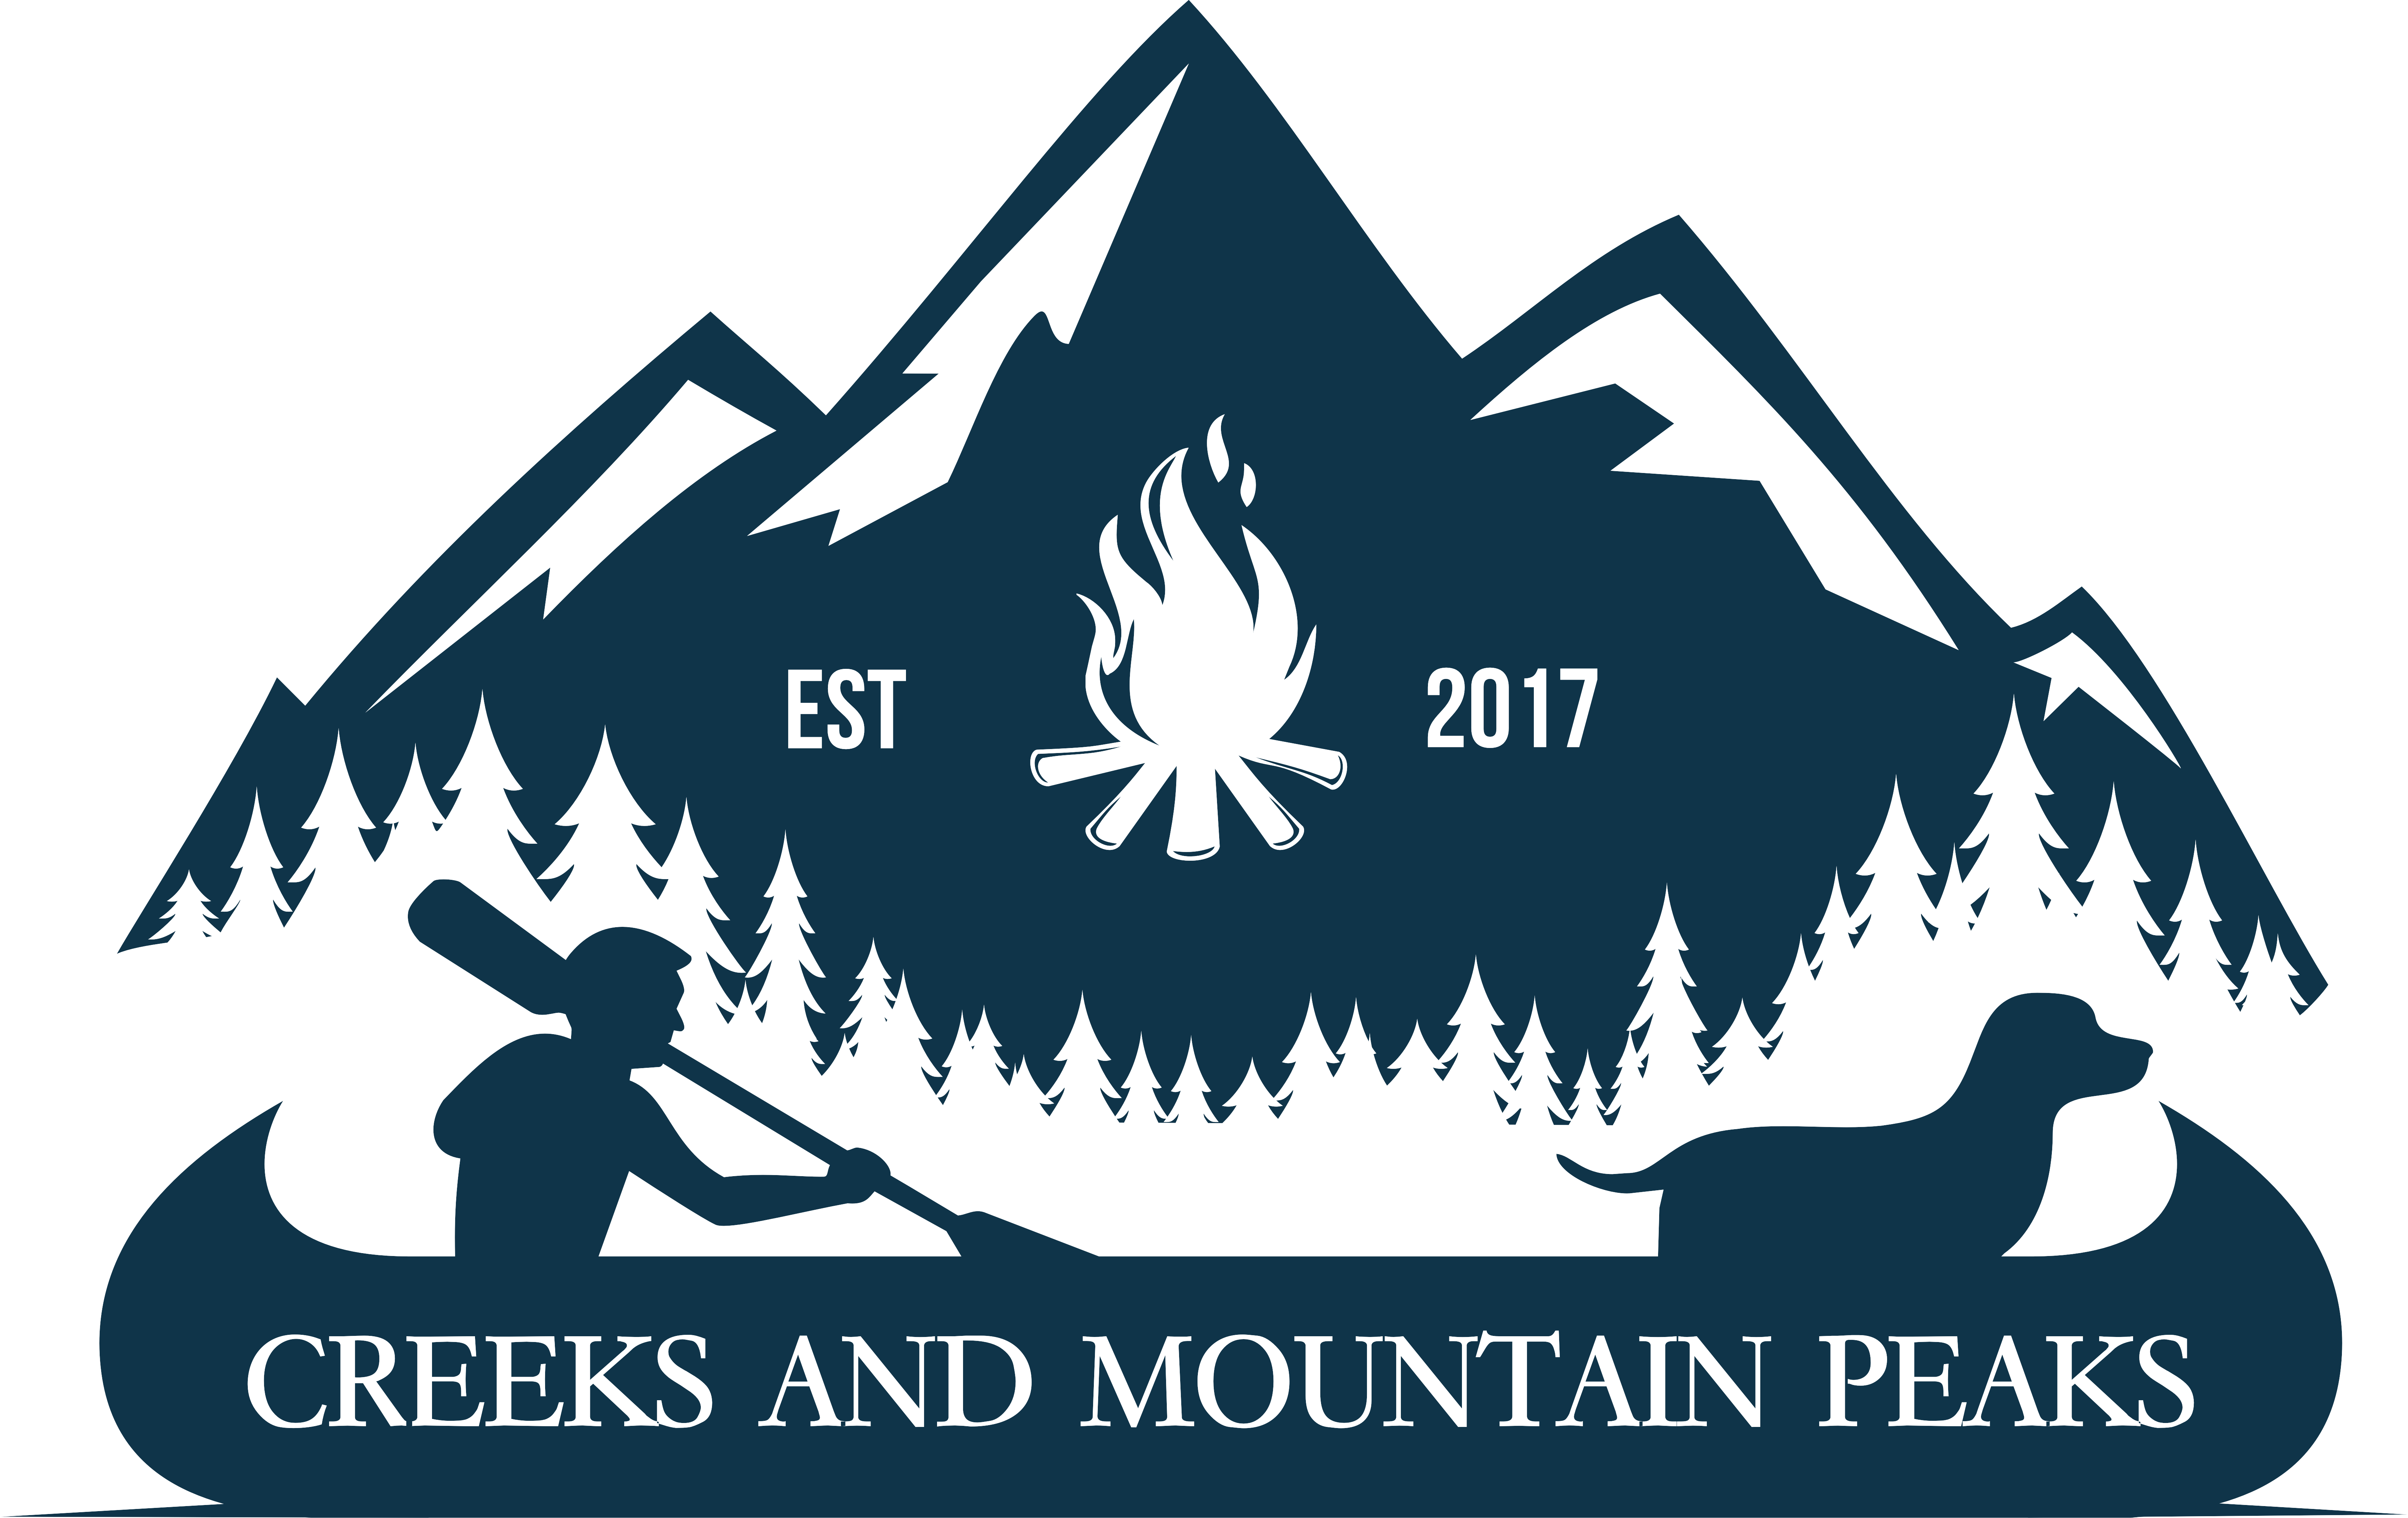 Create a vintage logo representing Creeks And Mountain Peaks